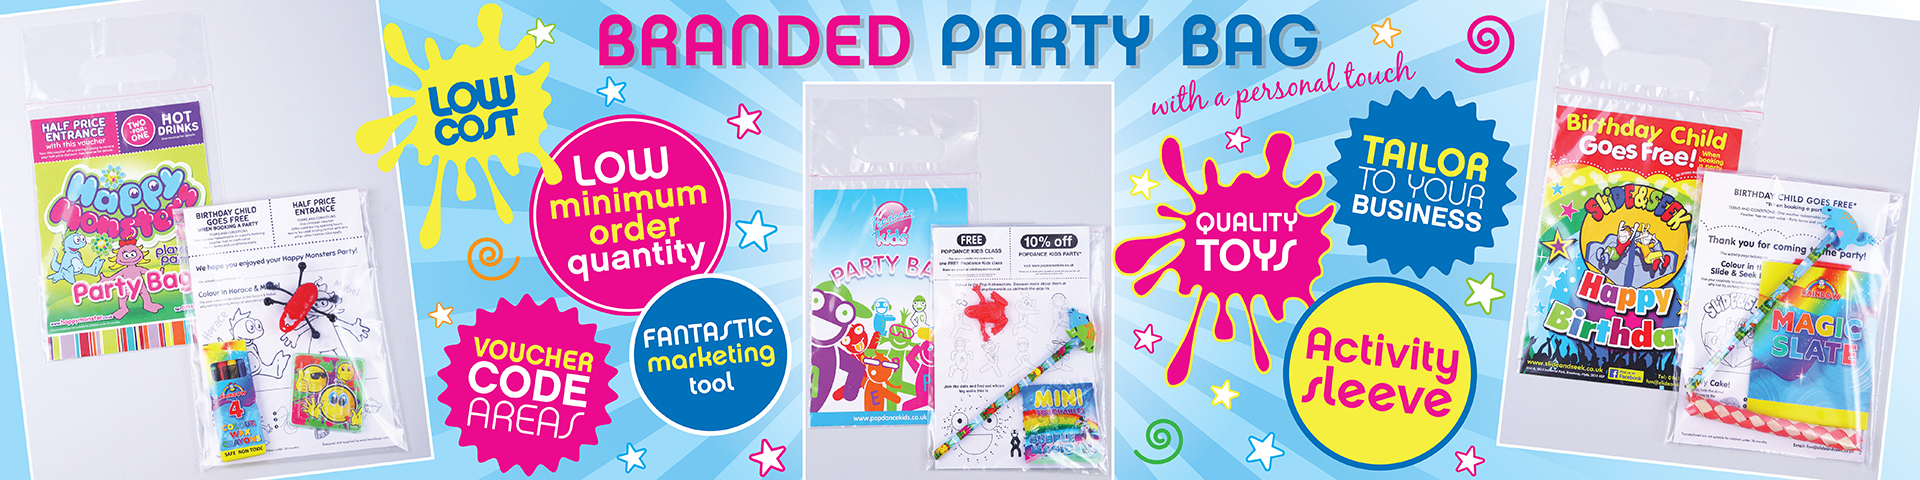 Branded Party Bags